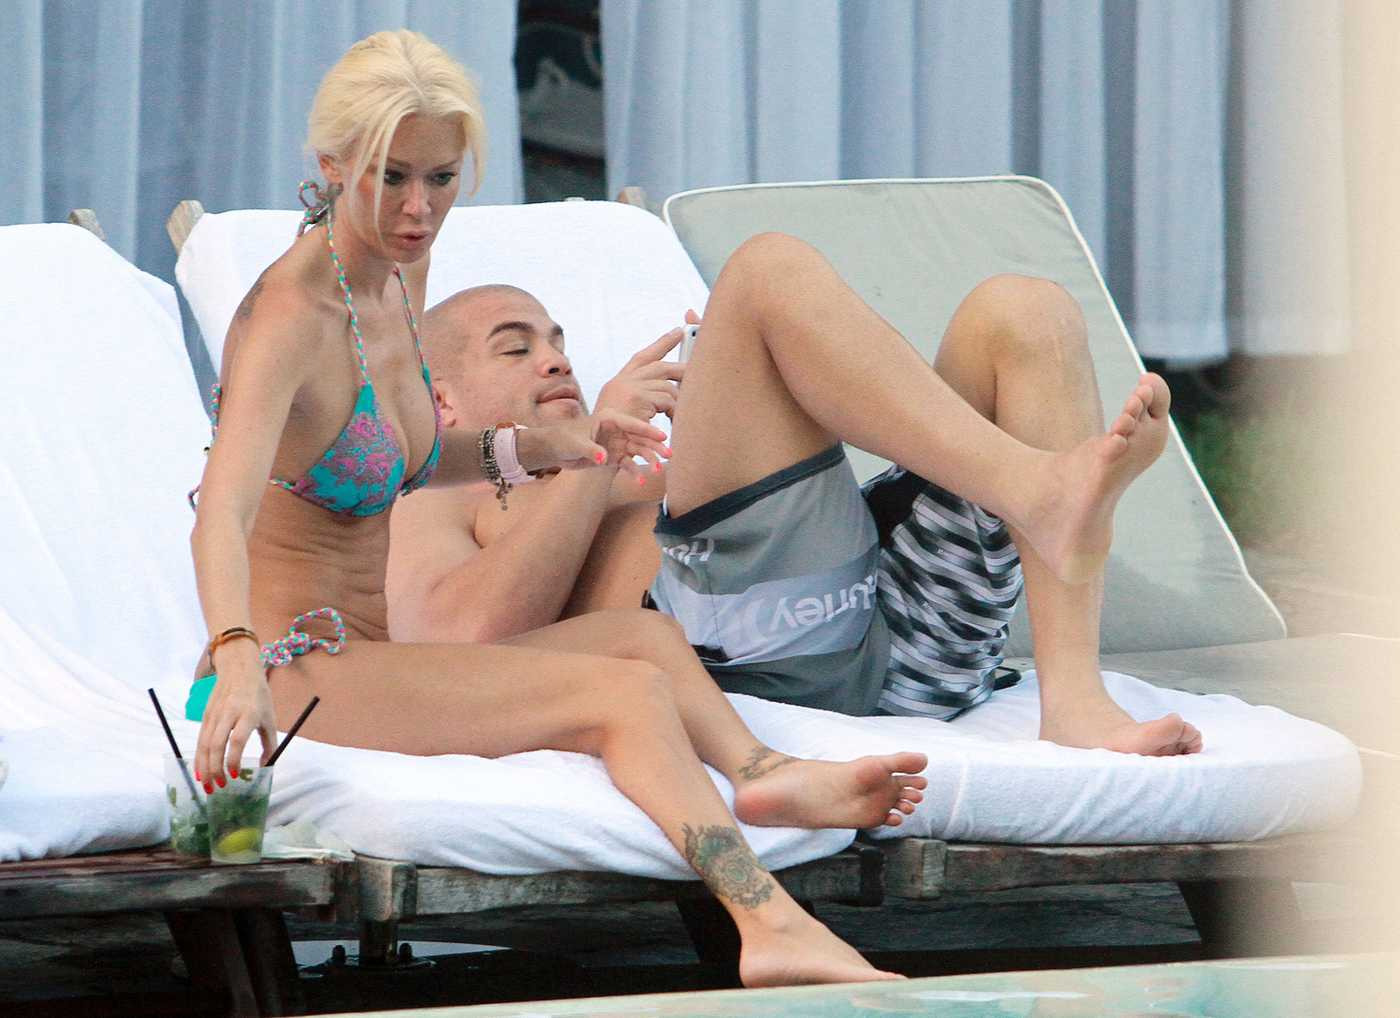 Jenna Jameson Bikini Candids Poolside In Miami Aug